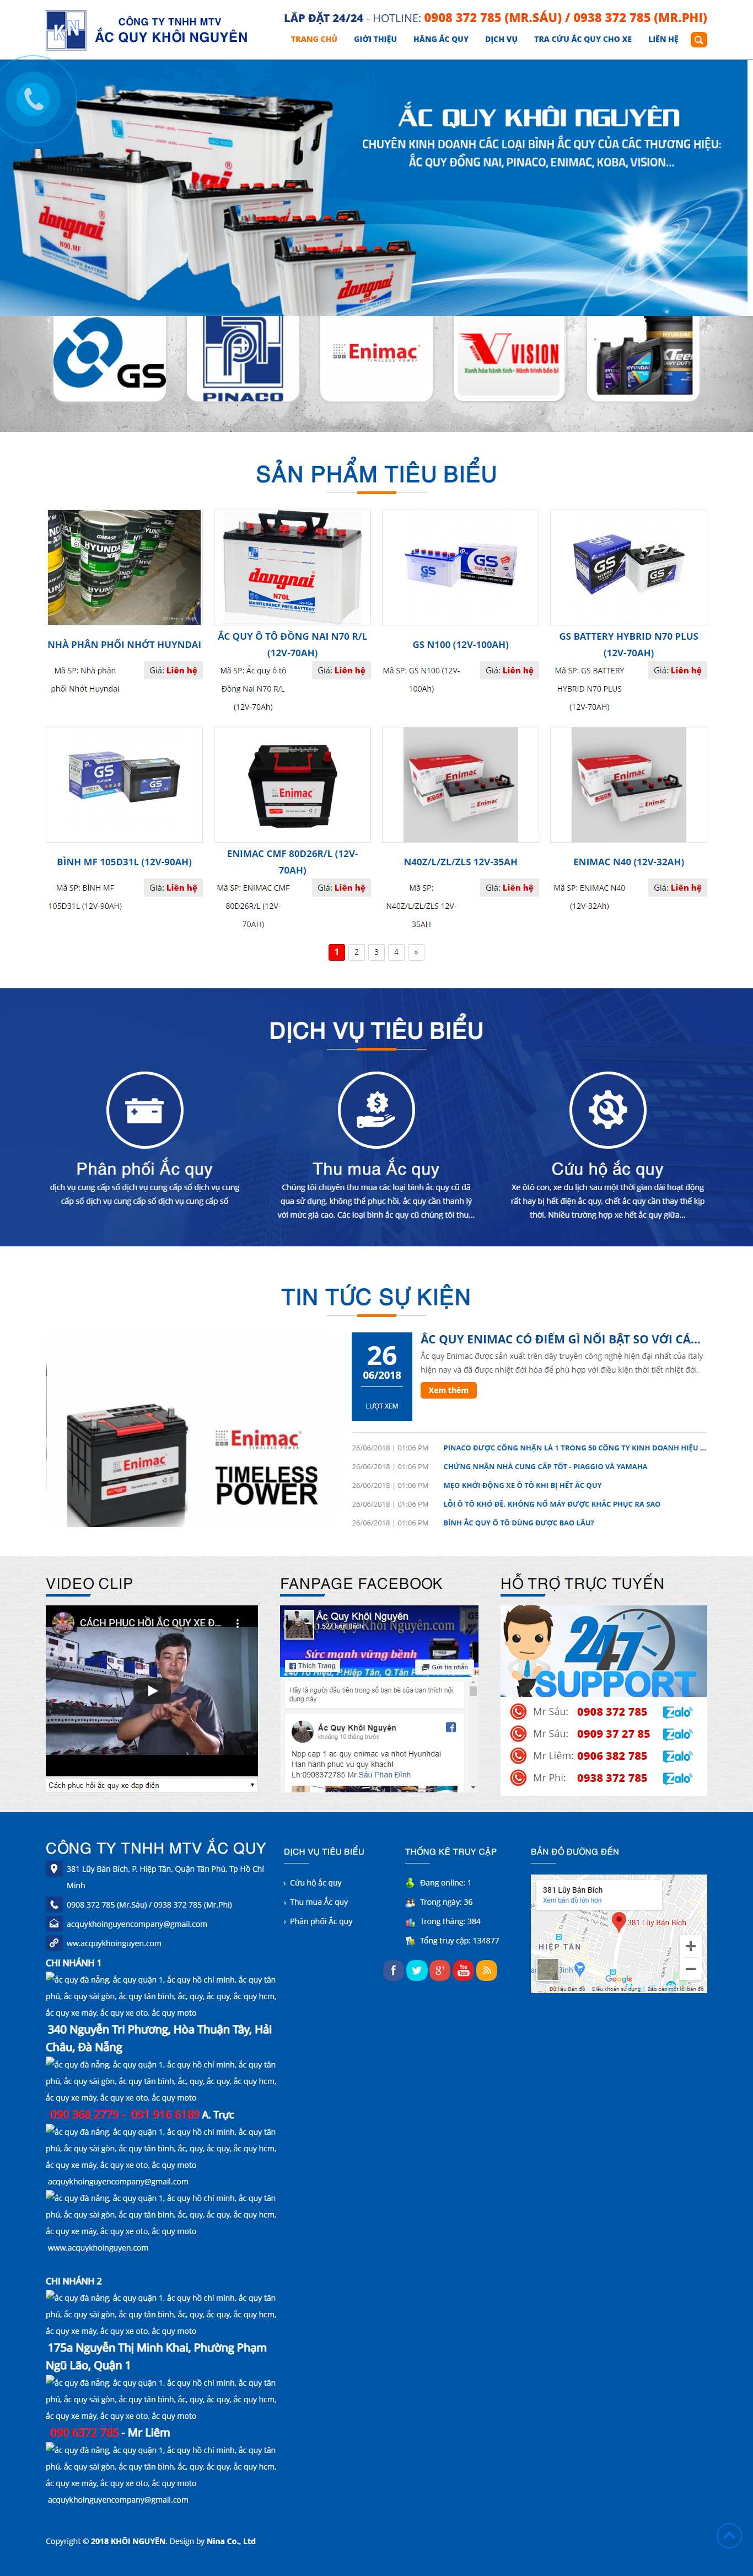 Thiết kế Website ắc quy - acquykhoinguyen.com